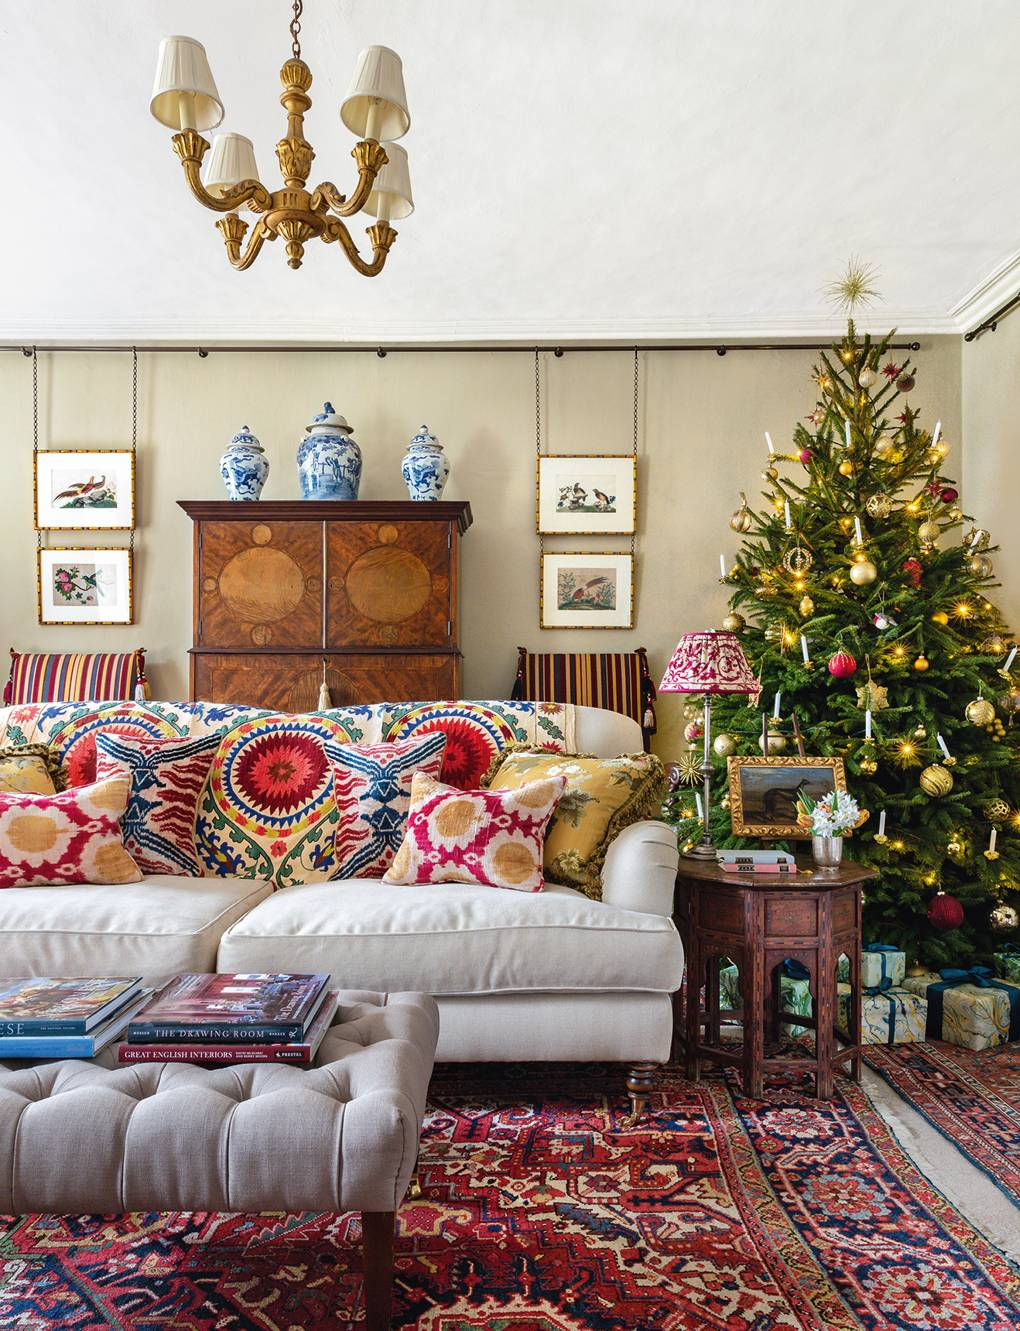 Carlos Garcia's Norfolk manor house richly decorated for Christmas